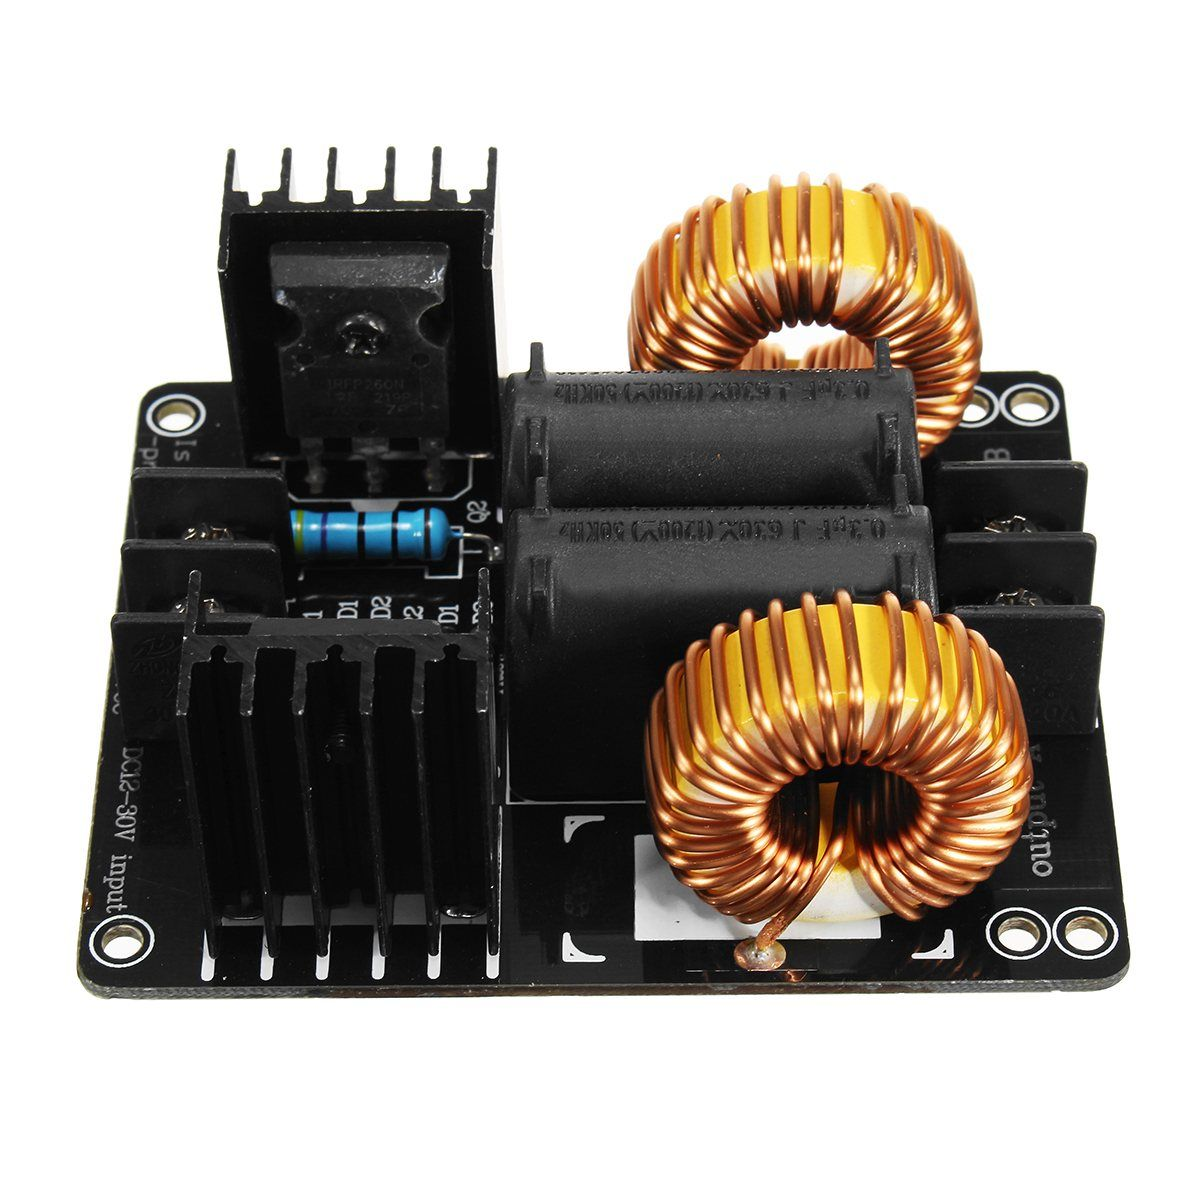 1PC 1000W 20A Low Voltage Induction Heating Coil Module Flyback Driver Electronic Components Heater